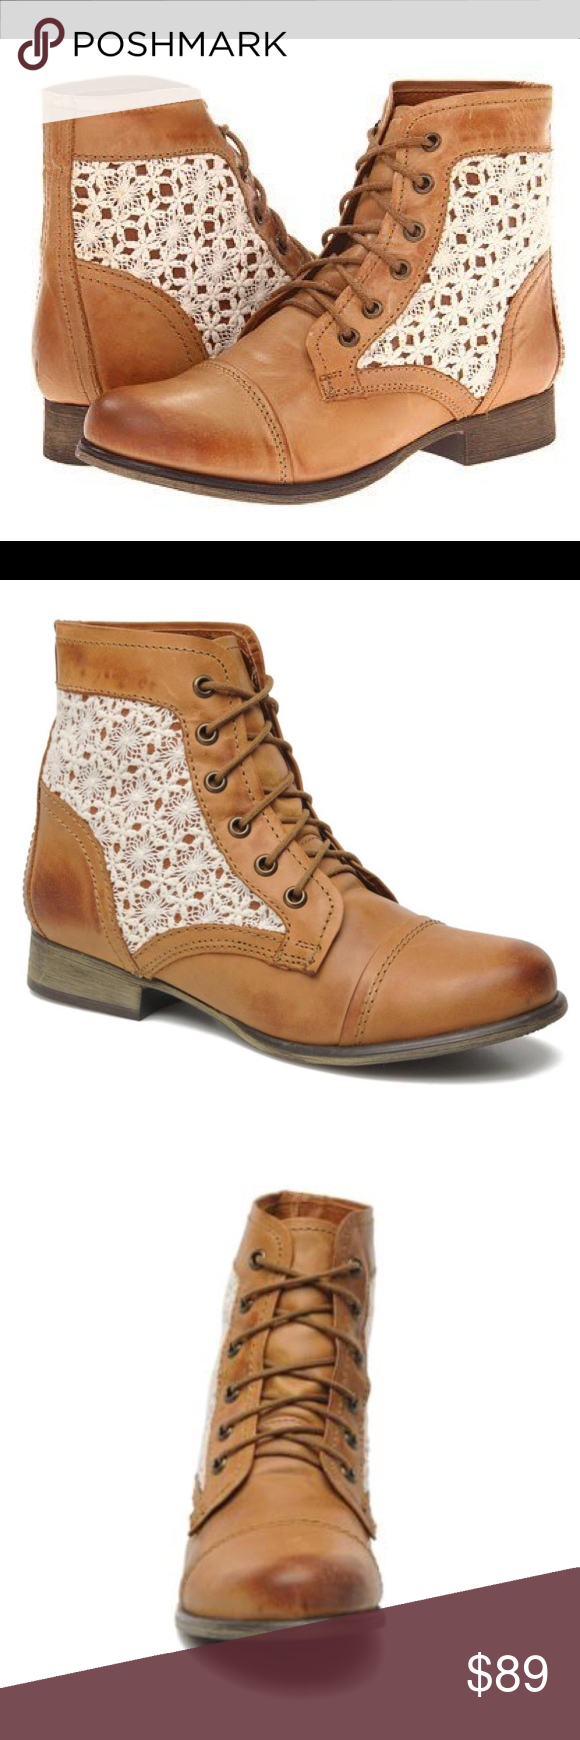 50602504902 Steve Madden Thundr-C Booties in Cognac NWT size 6 in women s. Steve Madden  Thundr-C Cognac Multi Crocheted Lace-Up Ankle Boots Buttery soft burnished  ...